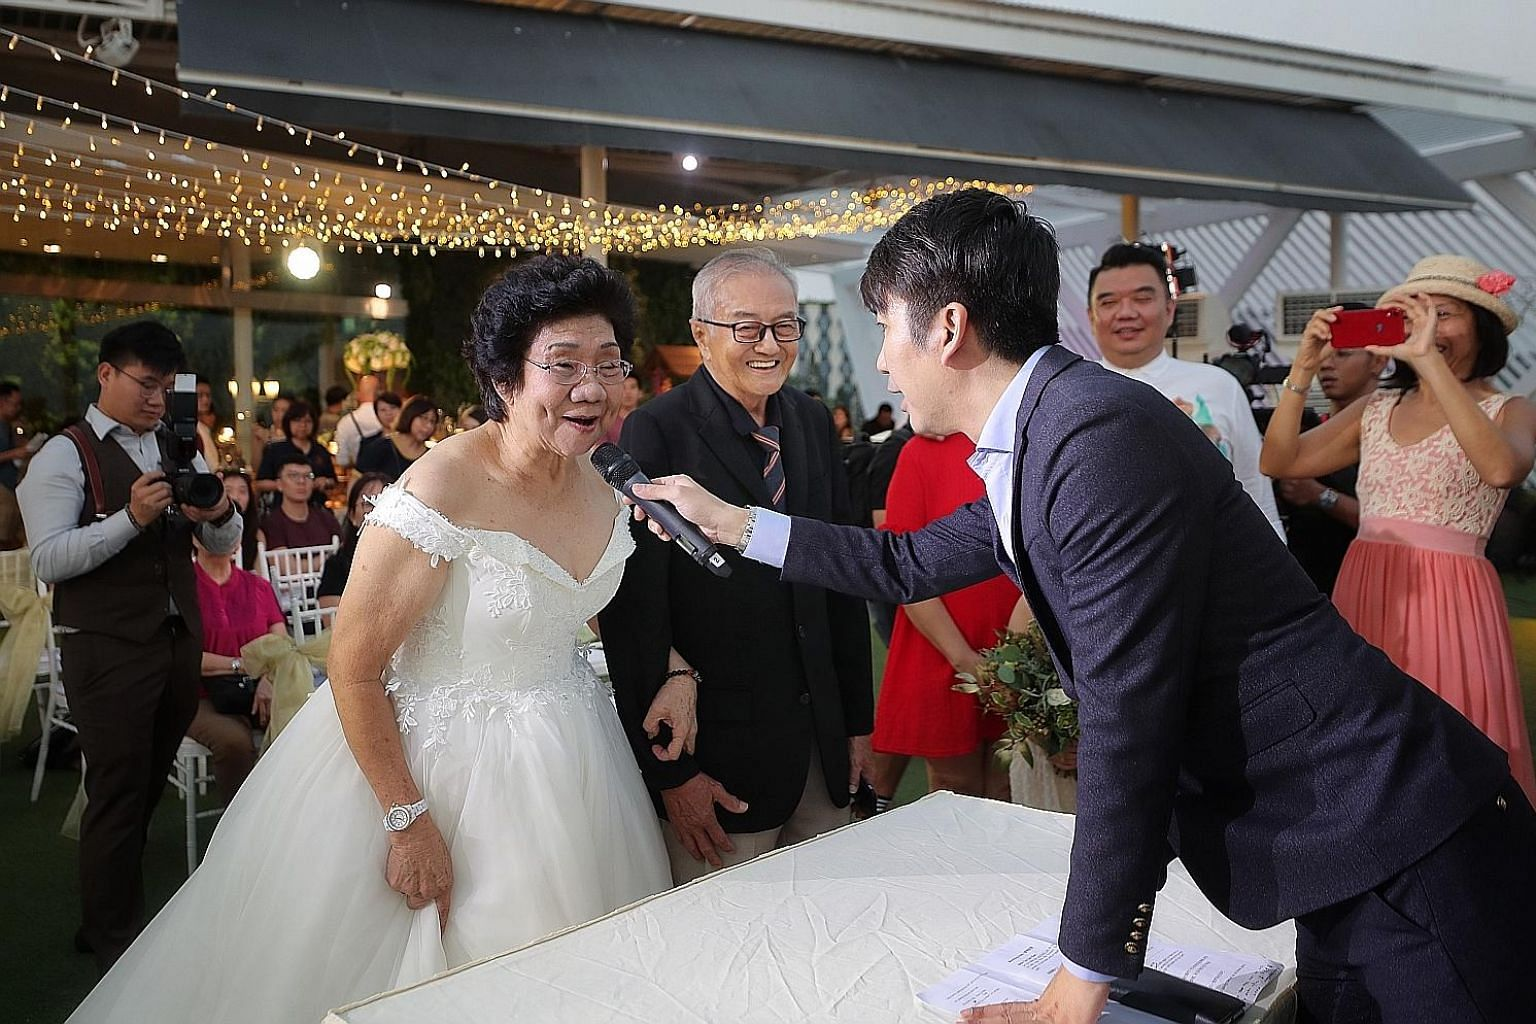 For Mr Ong Soh Lim, 80, and Madam Teo Soh Bee, 74, it was a truly special moment as they exchanged vows once again to celebrate their 54th wedding anniversary at Sky Garden Sentosa. Their children and grandchildren helped plan the walk down the aisle